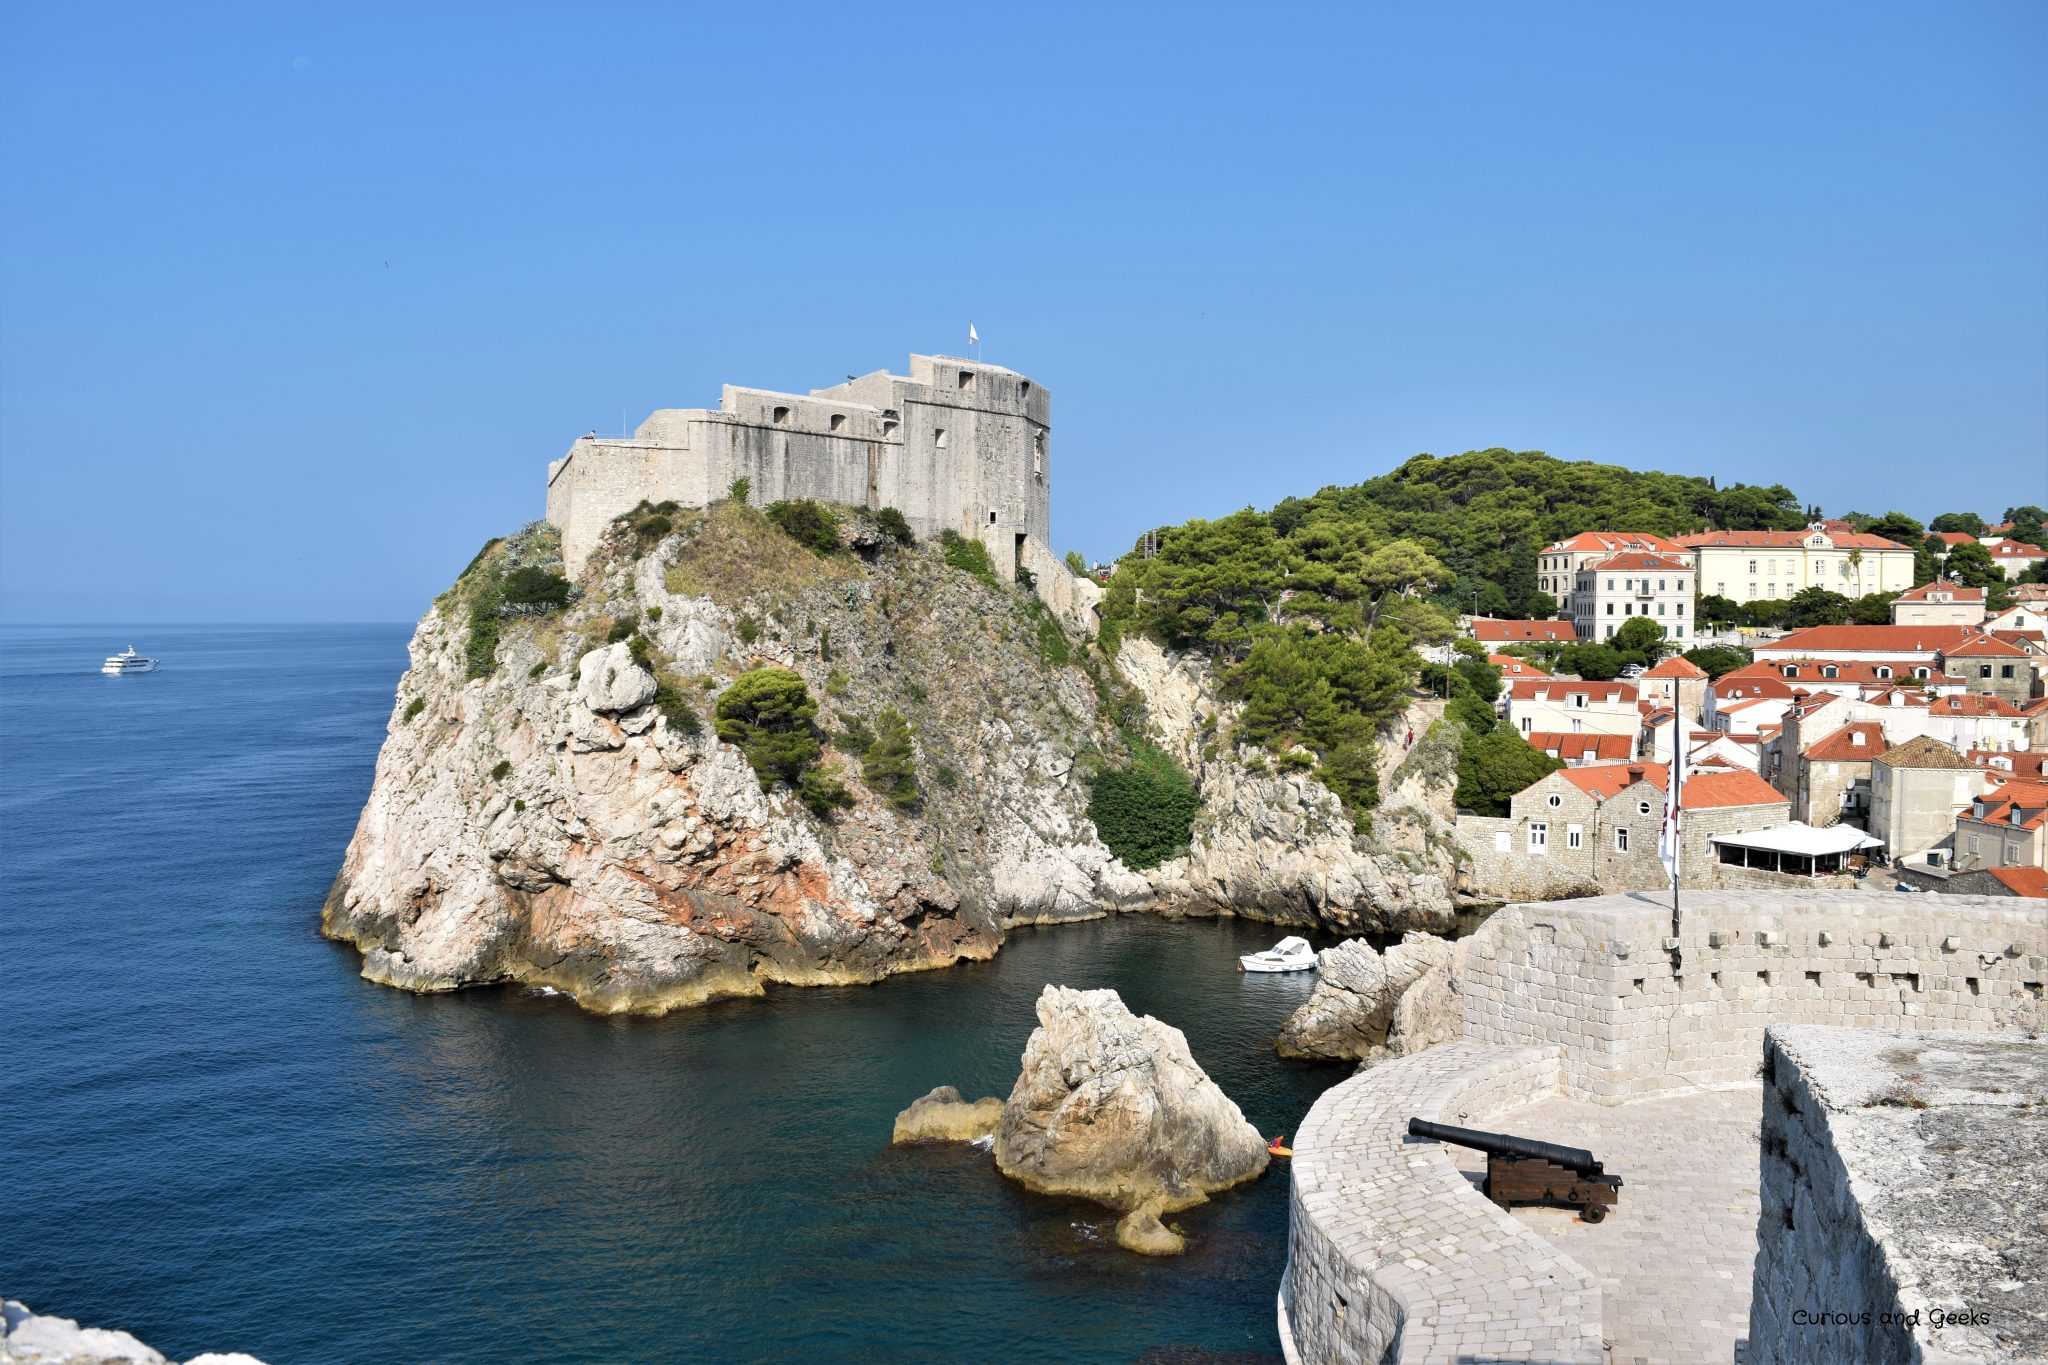 12. Bokar fortress - Game of Thrones filming locations in Dubrovnik